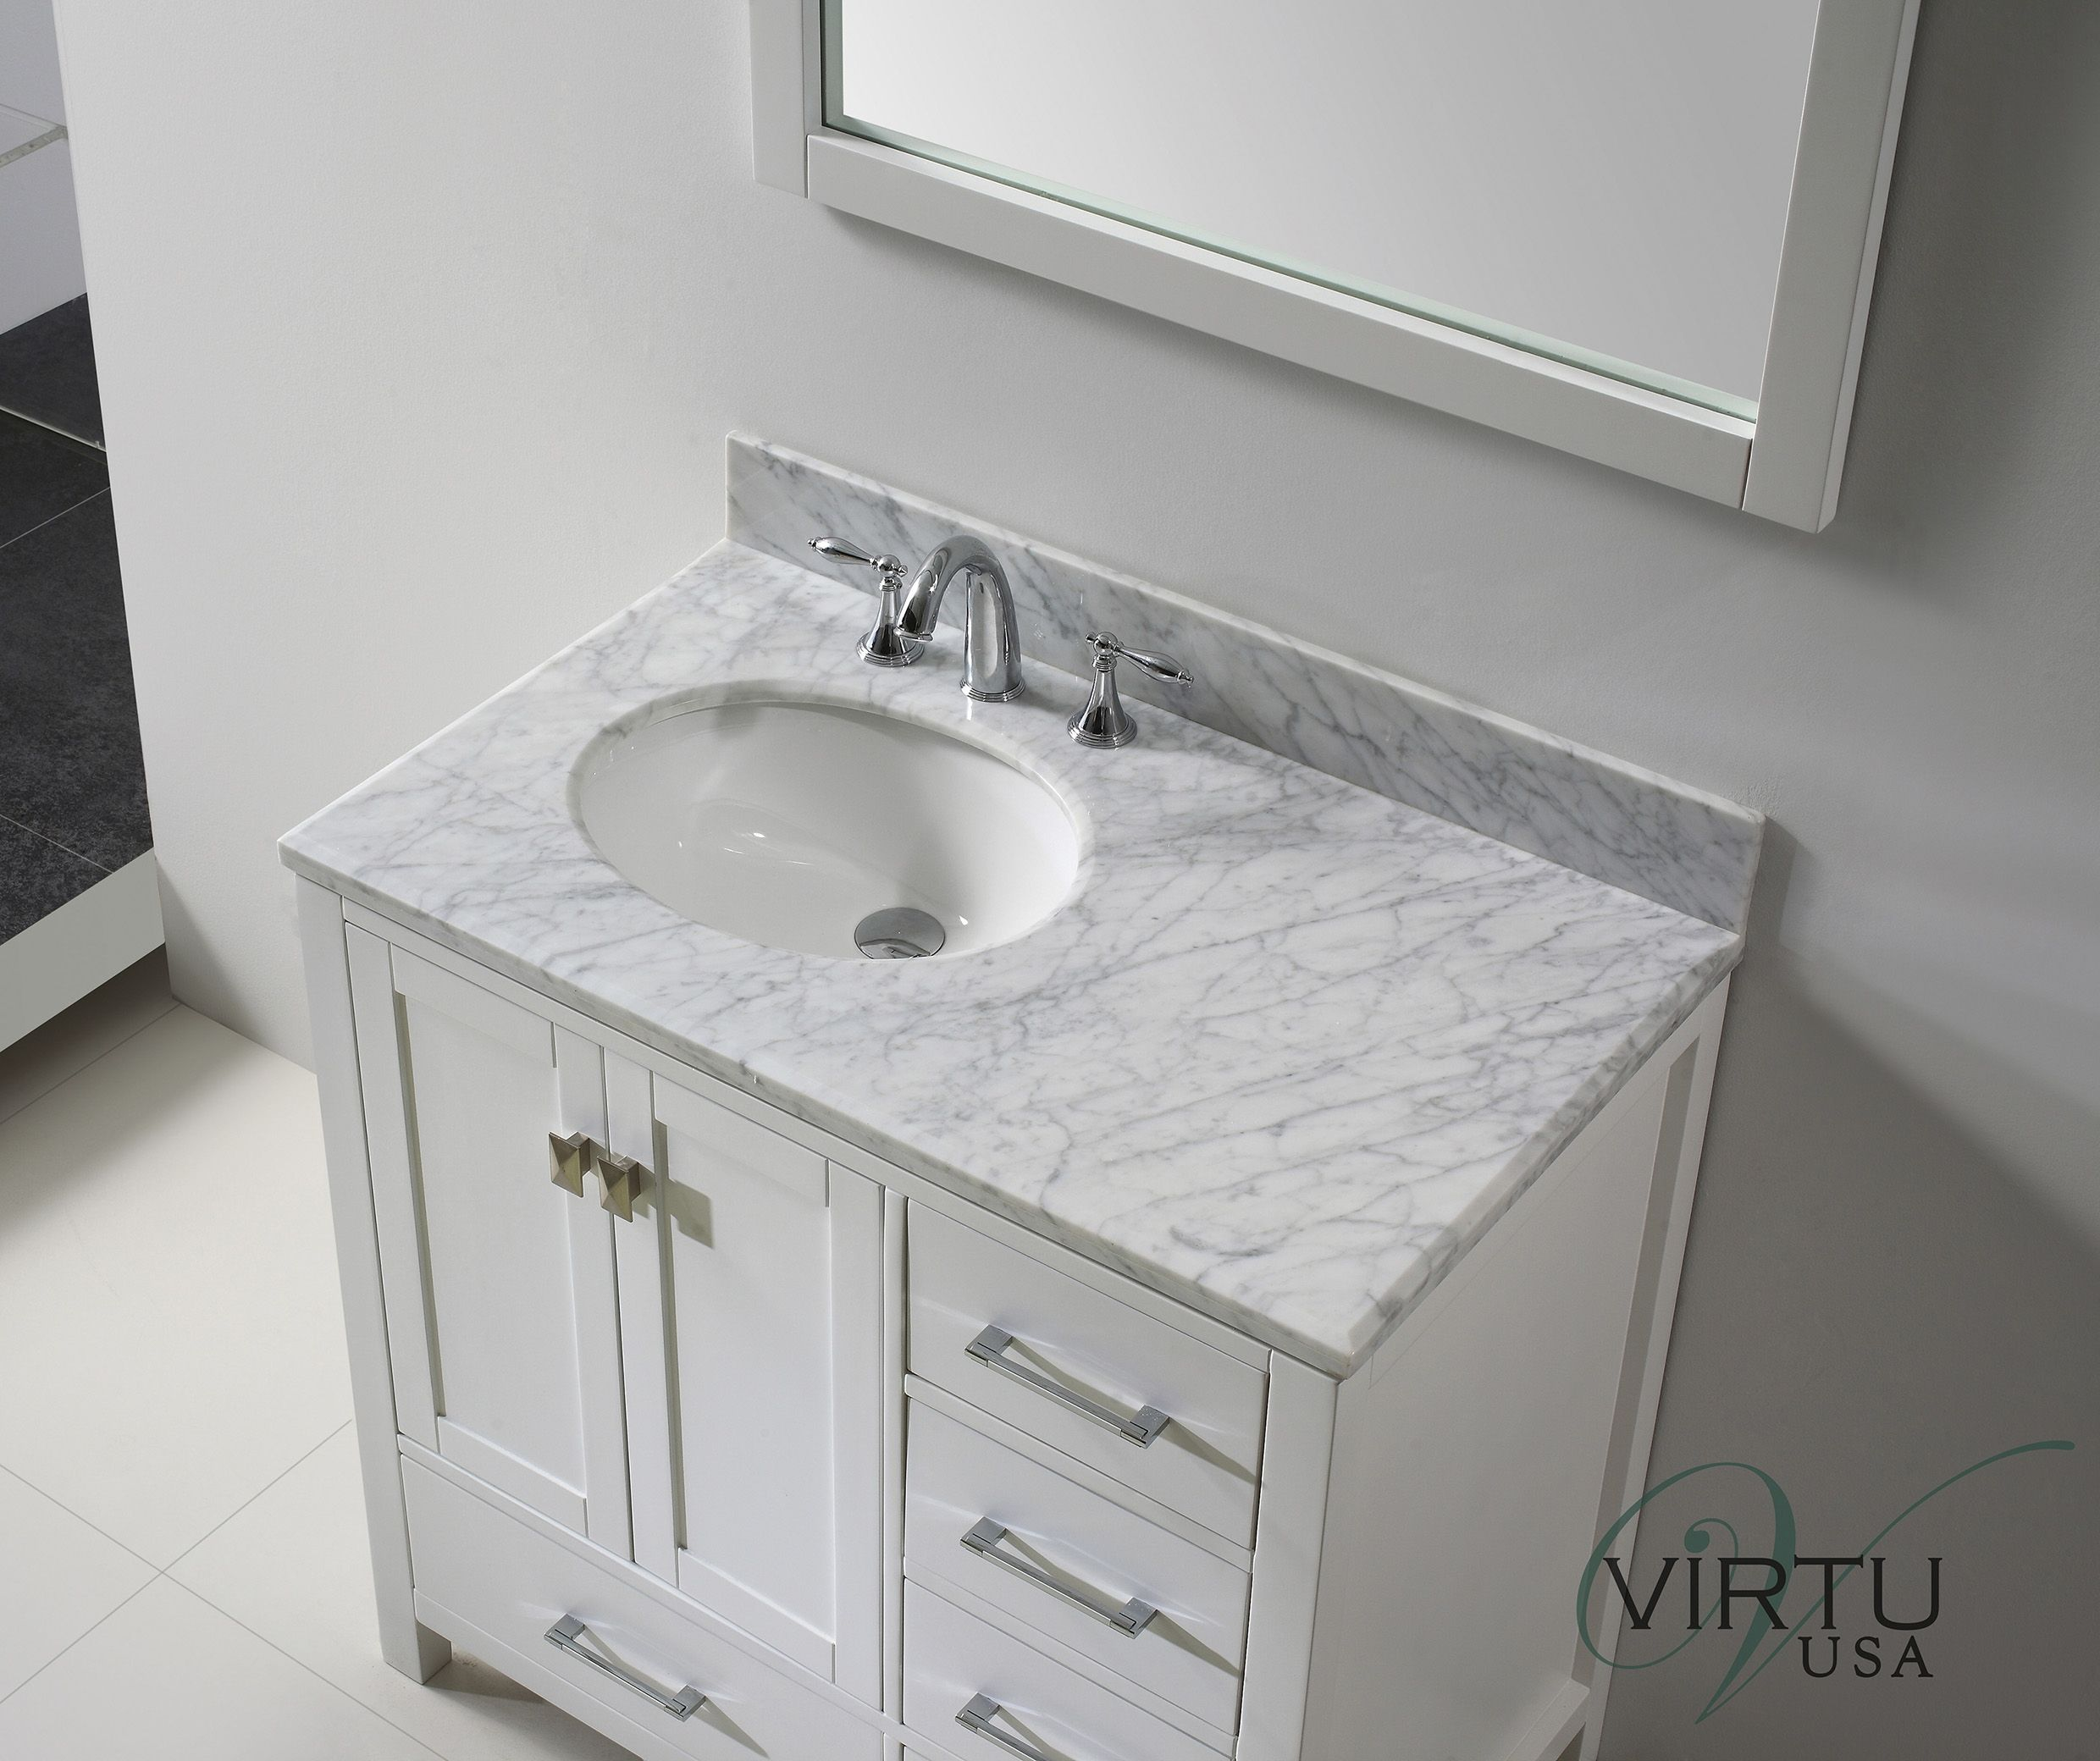 18 Inch Deep Bathroom Vanity Cabinet You Ve A Great Deal To Think About I Small Bathroom Vanities Bathroom Vanities Without Tops Single Sink Bathroom Vanity